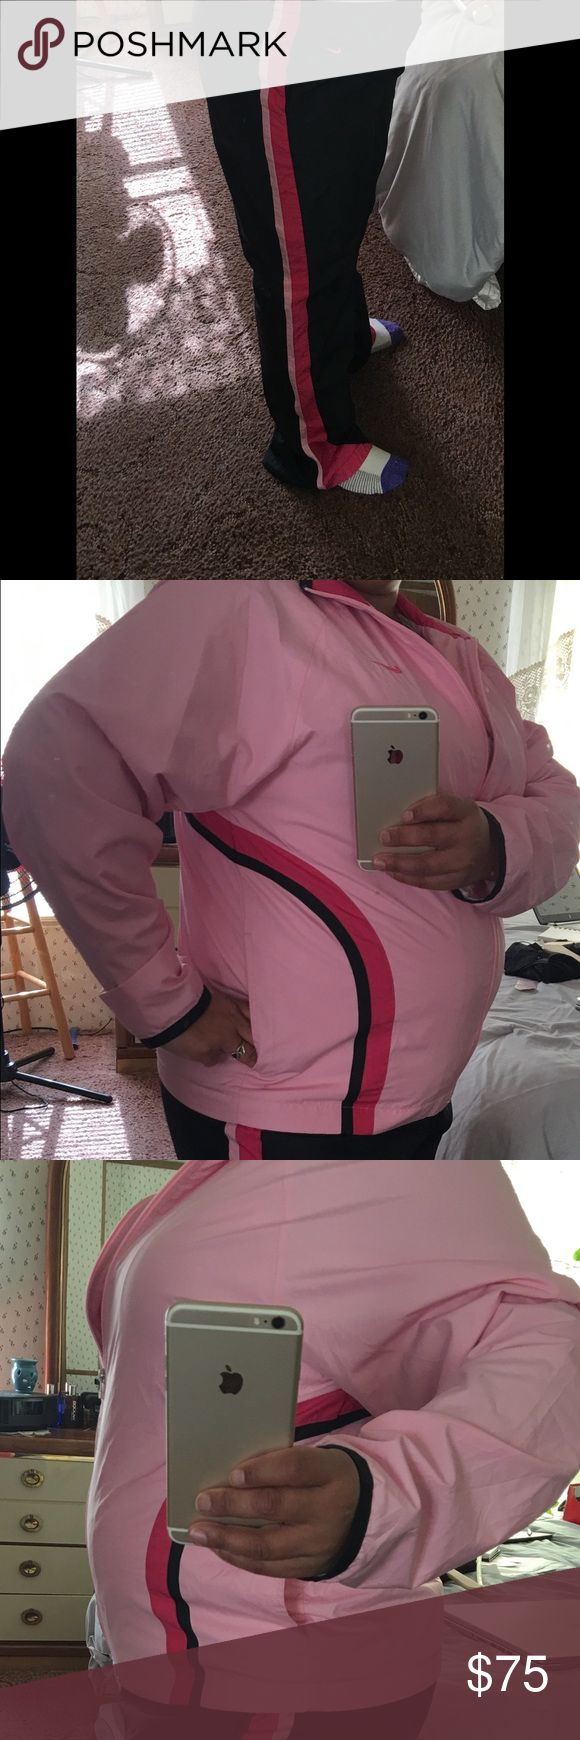 Nike Jogging Suit Bundle 3  PC Nike track suit set. Matching pink top from Christopher and Banks comes with the match Track suit. Worn a few times Nike Other